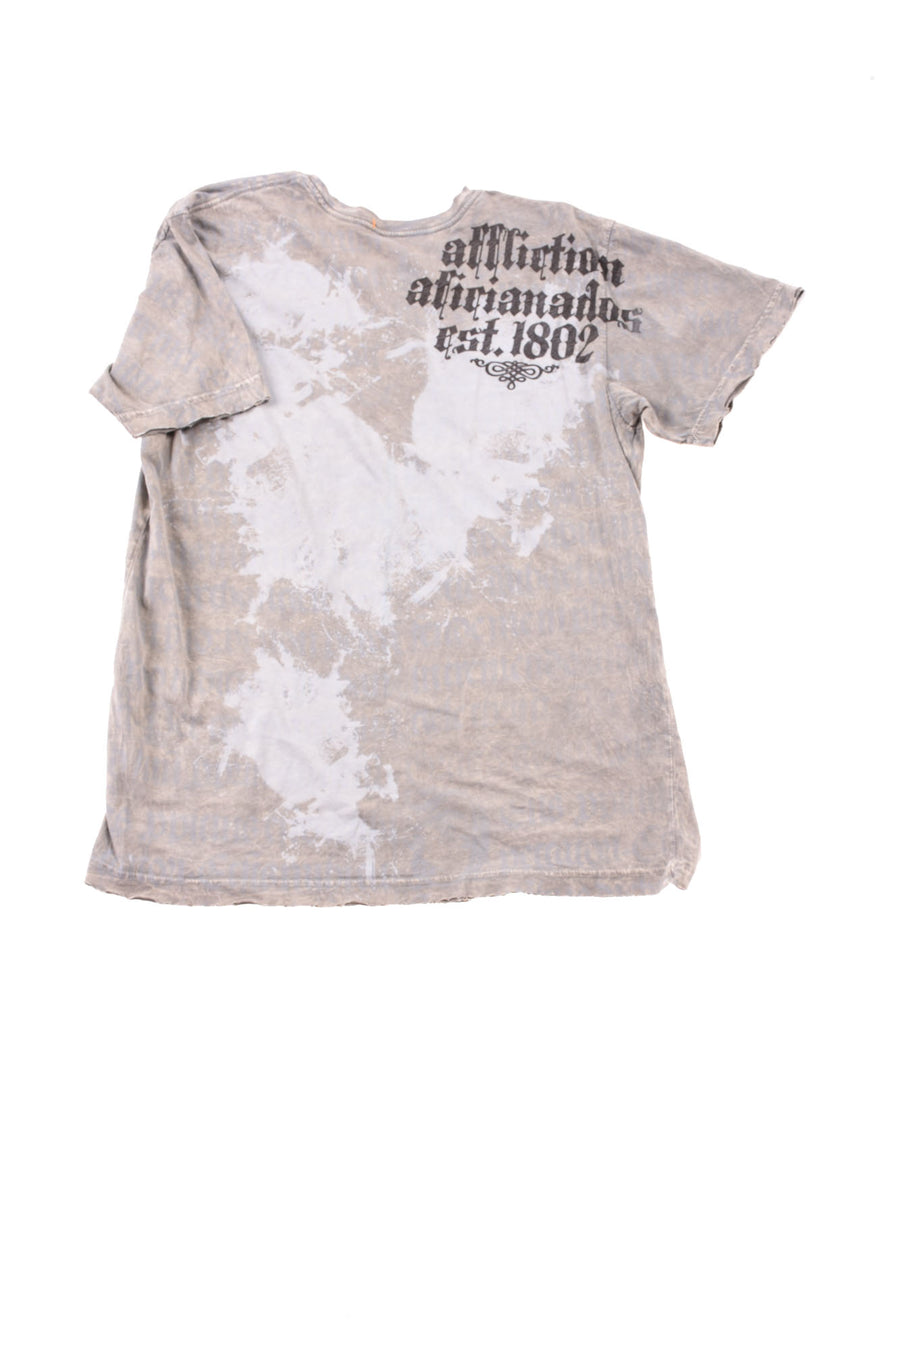 Men's Shirt By Affliction